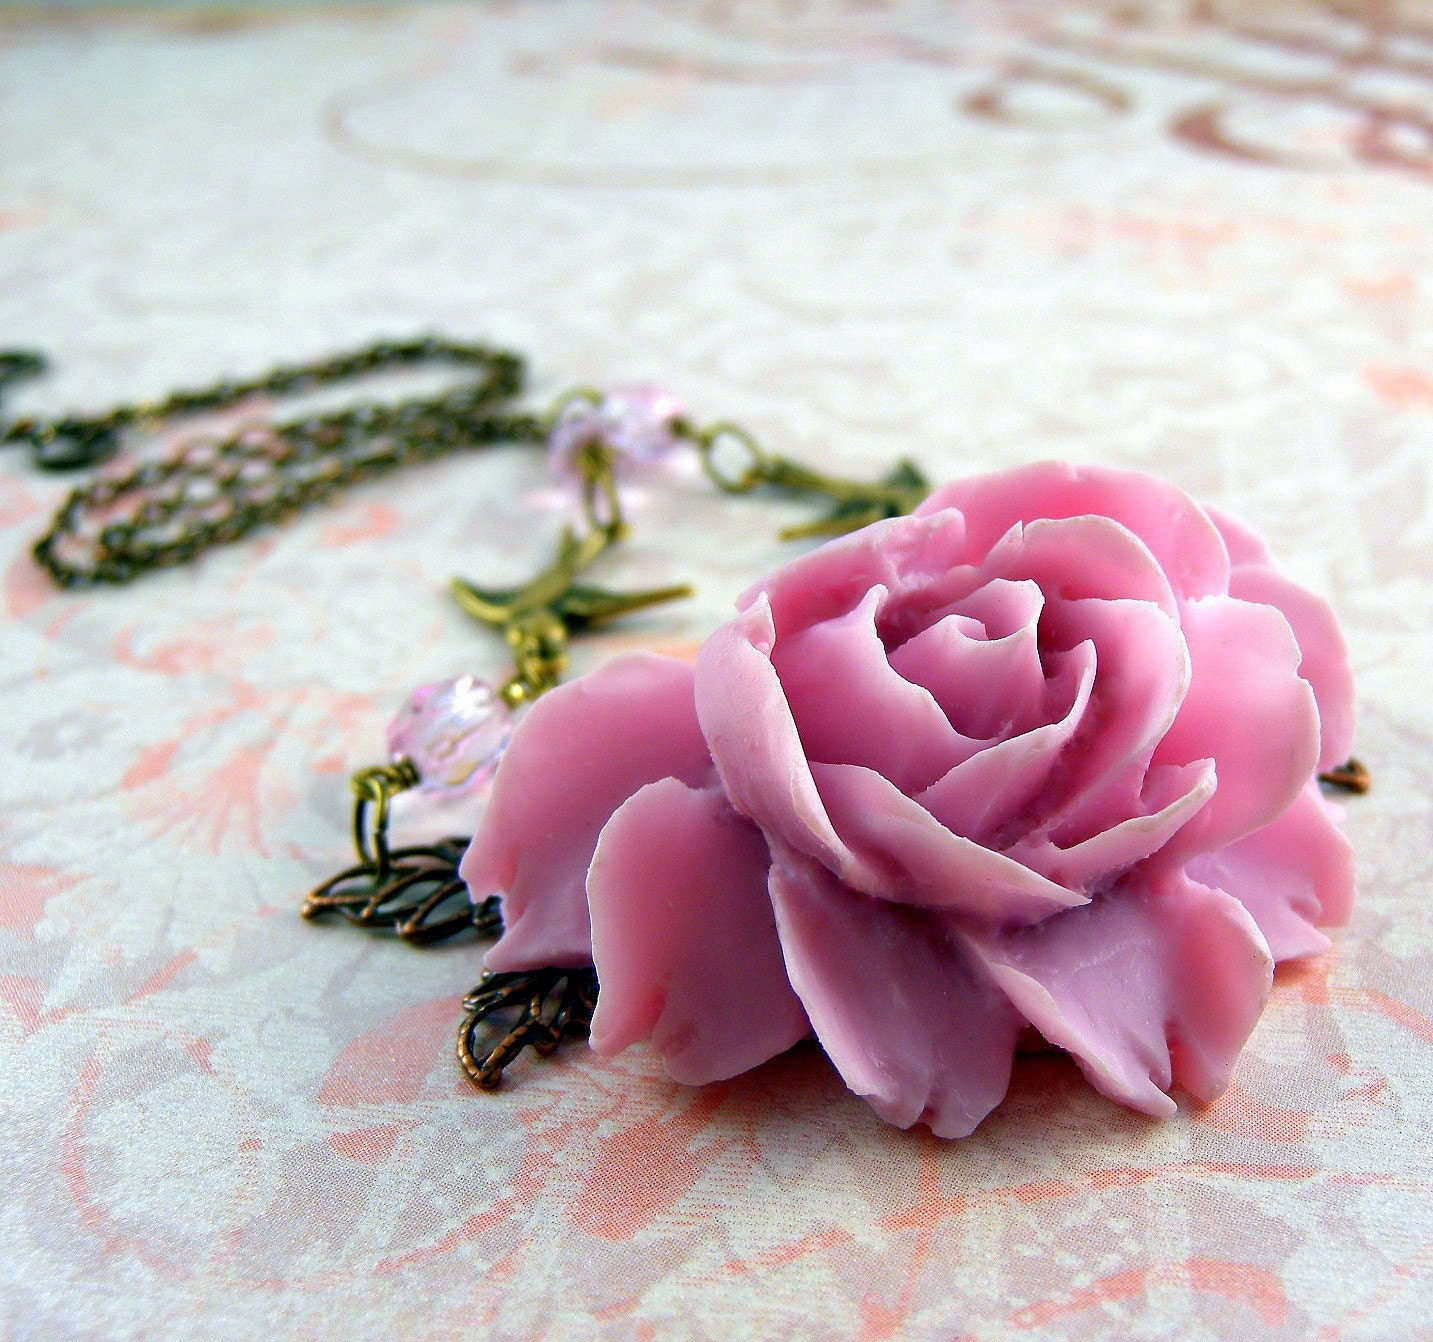 Handmade Jewelry on Etsy - Romantic Baby Pink Rose by decoratethediva